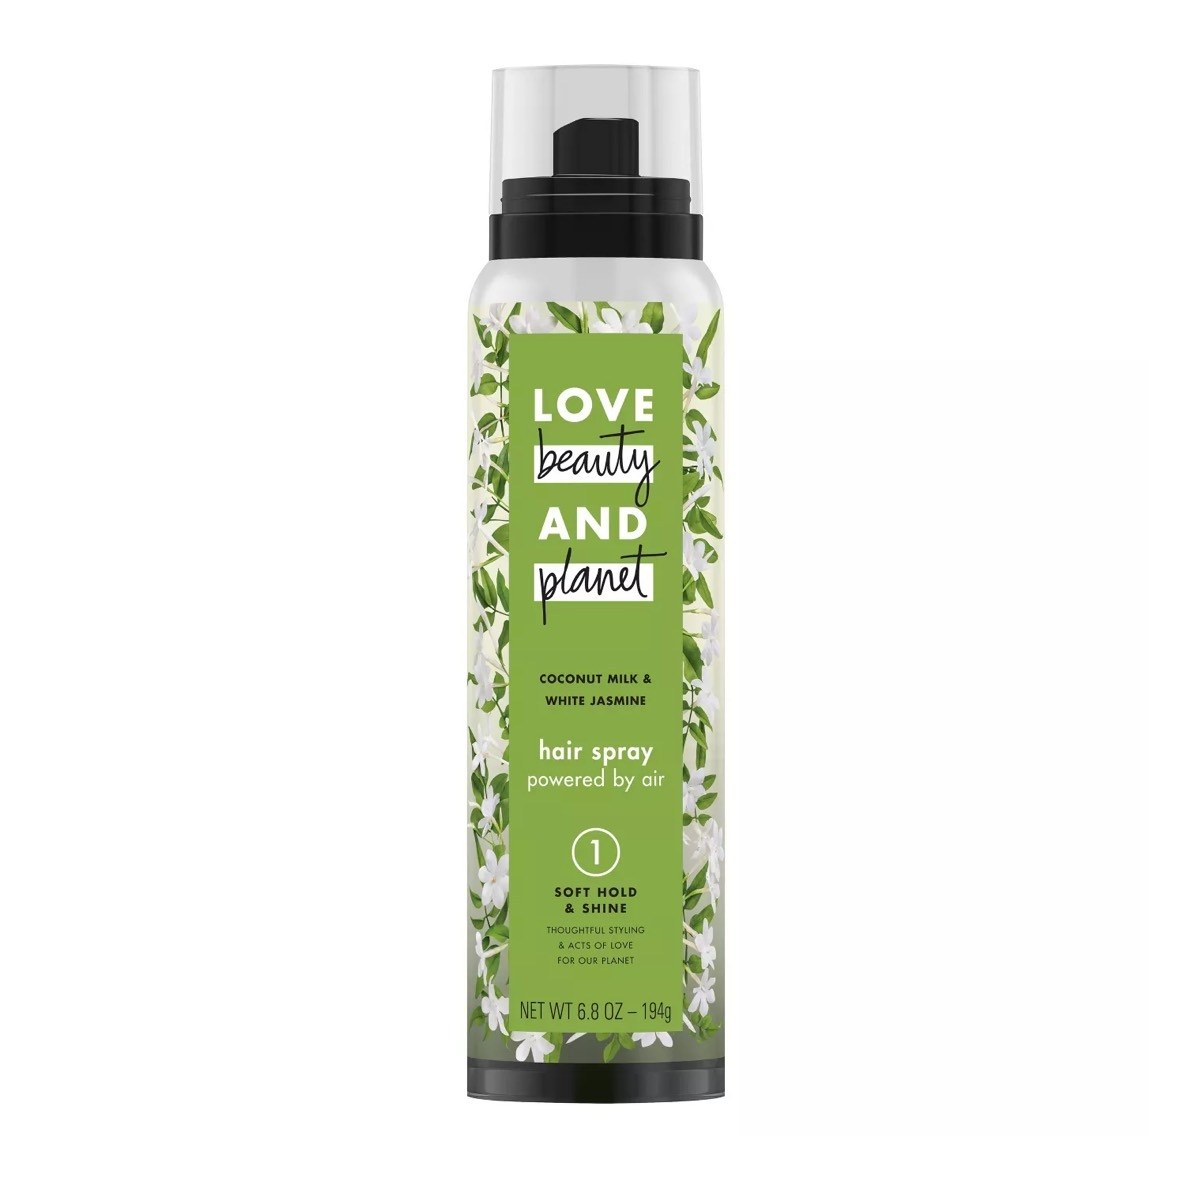 Love Beauty and Planet Coconut Milk & White Jasmine Frizz Control Hair Spray